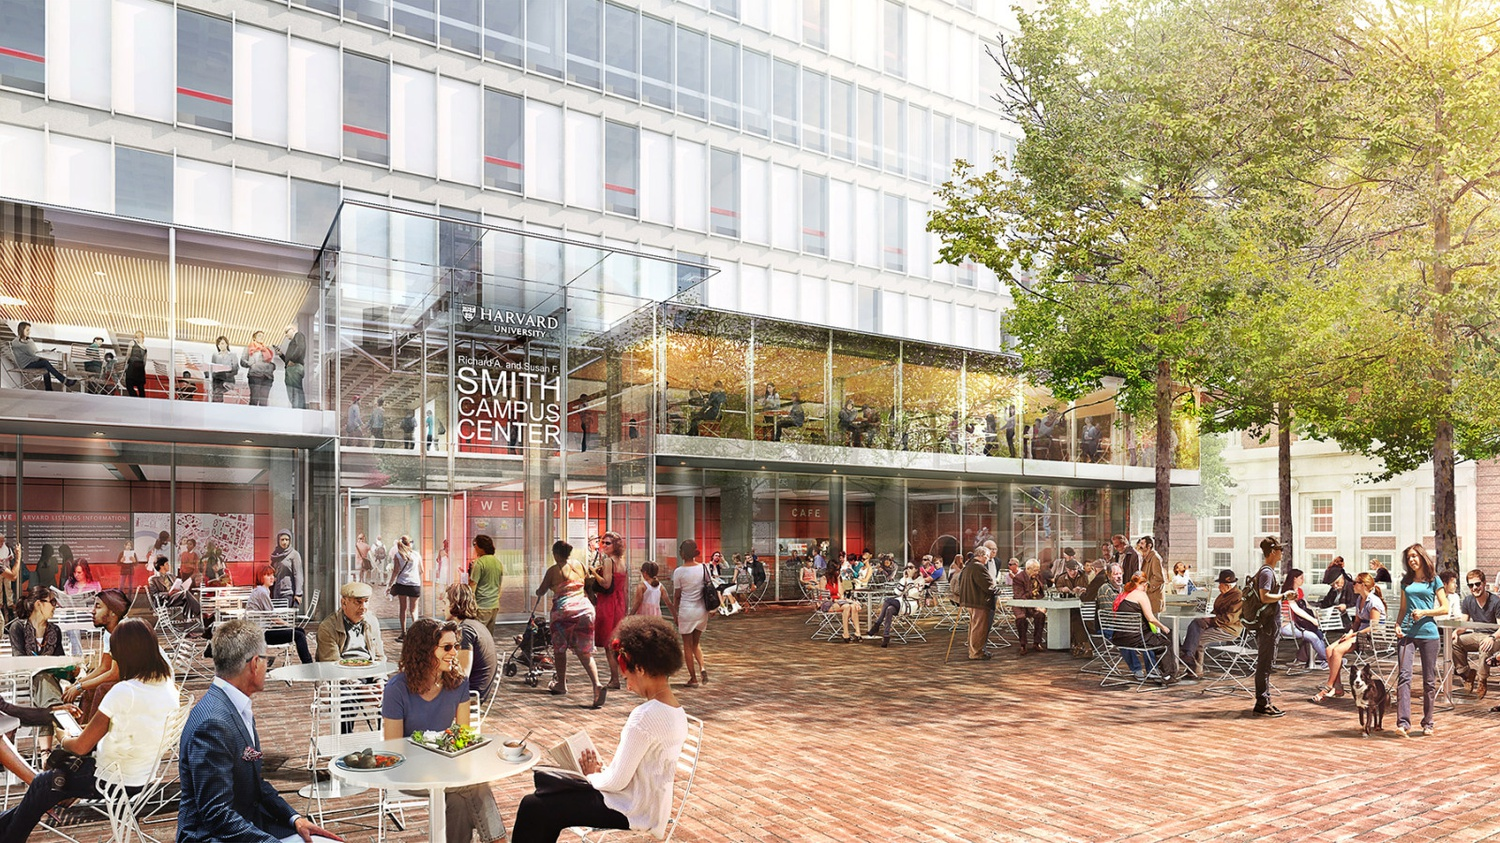 In a rendering of the expected external appearance of the renovated Smith Campus Center, people can be seen playing chess, enjoying the outdoor pavilion, and purchasing food from the variety of eateries.